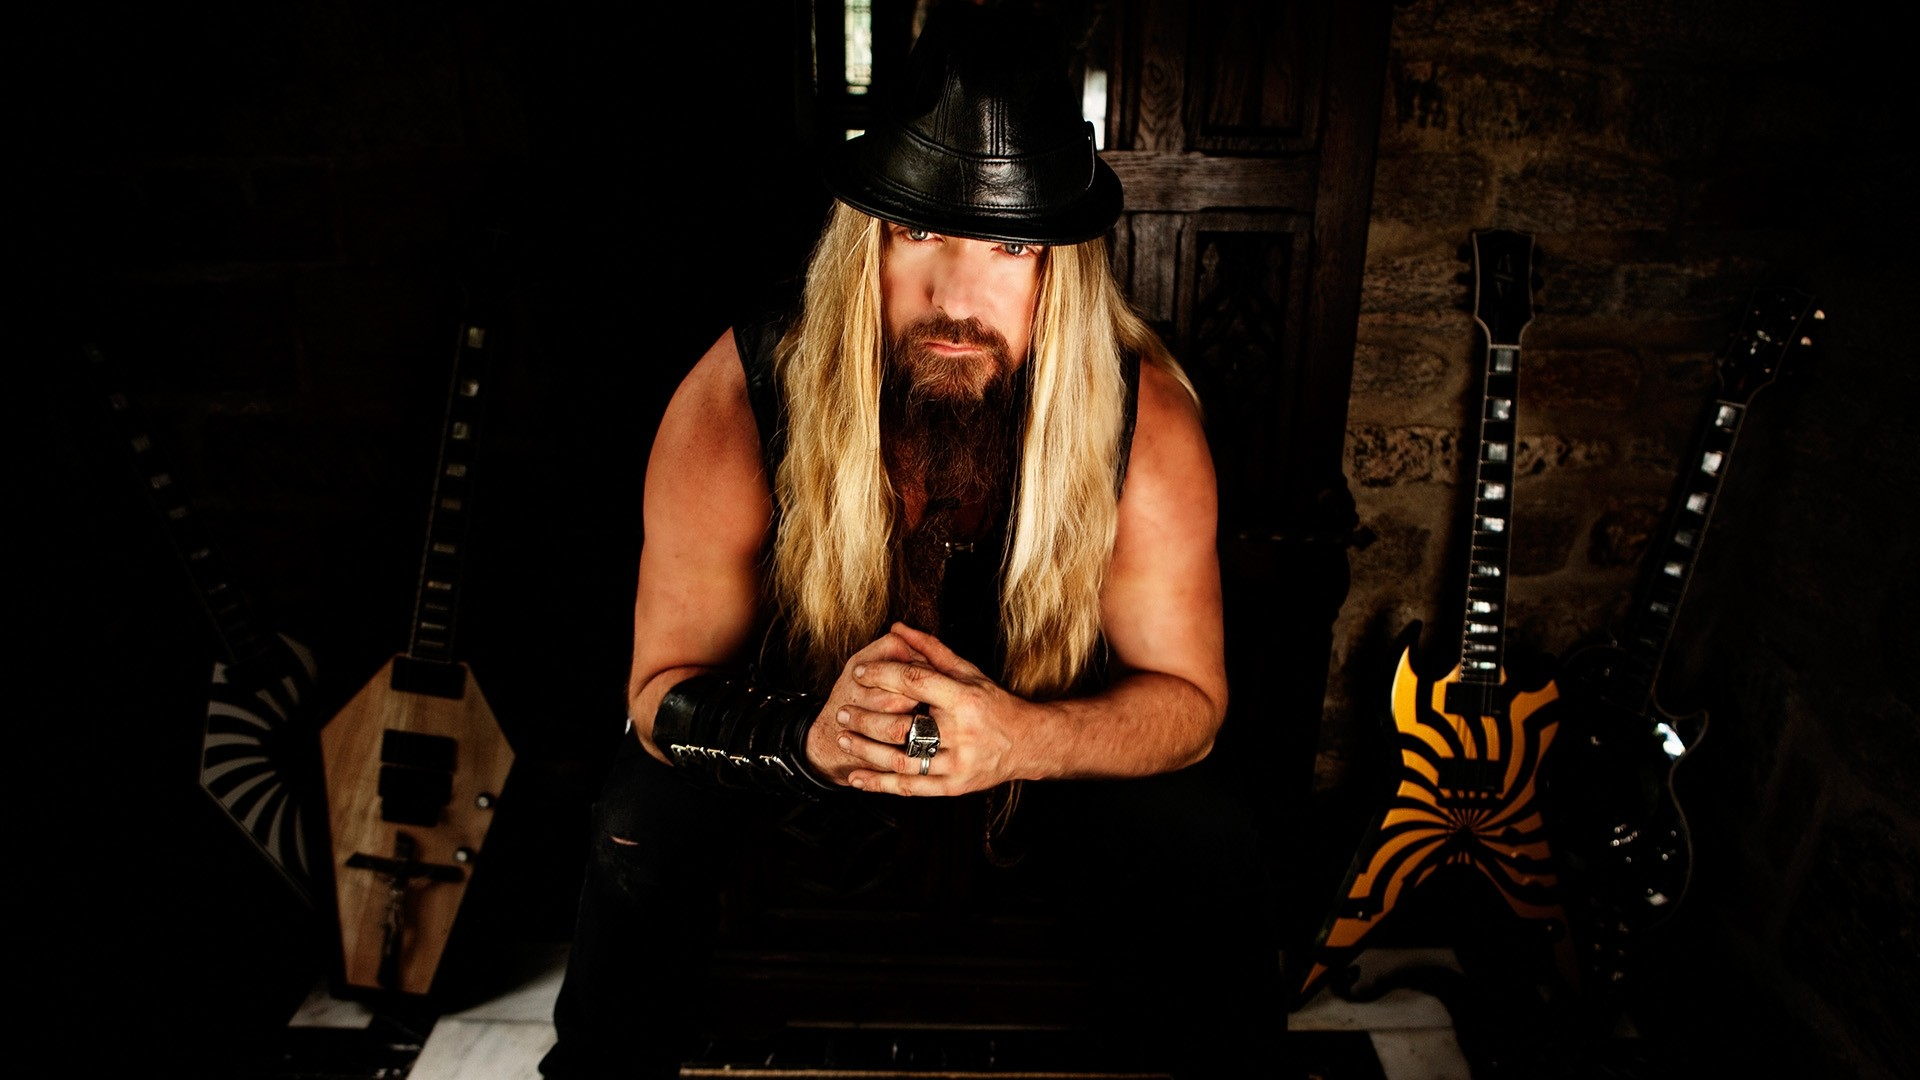 1920x1080  Wallpaper zakk wylde, guitars, hair, bracelet, room